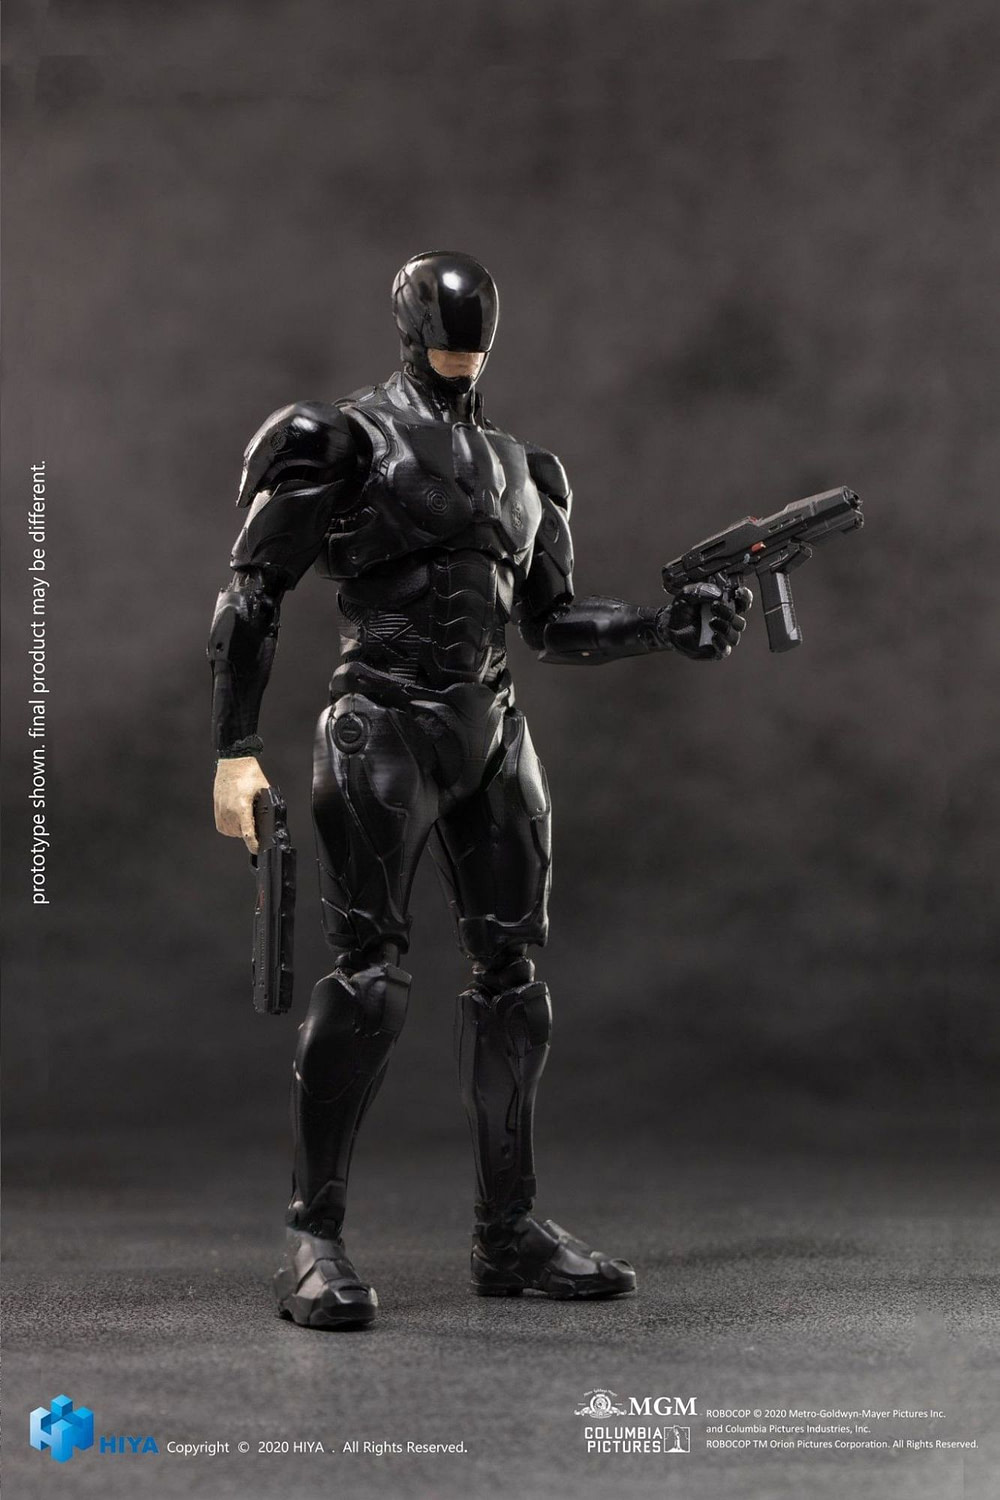 RoboCop is the Law with New 2014 Reboot Hiya Toys Figure